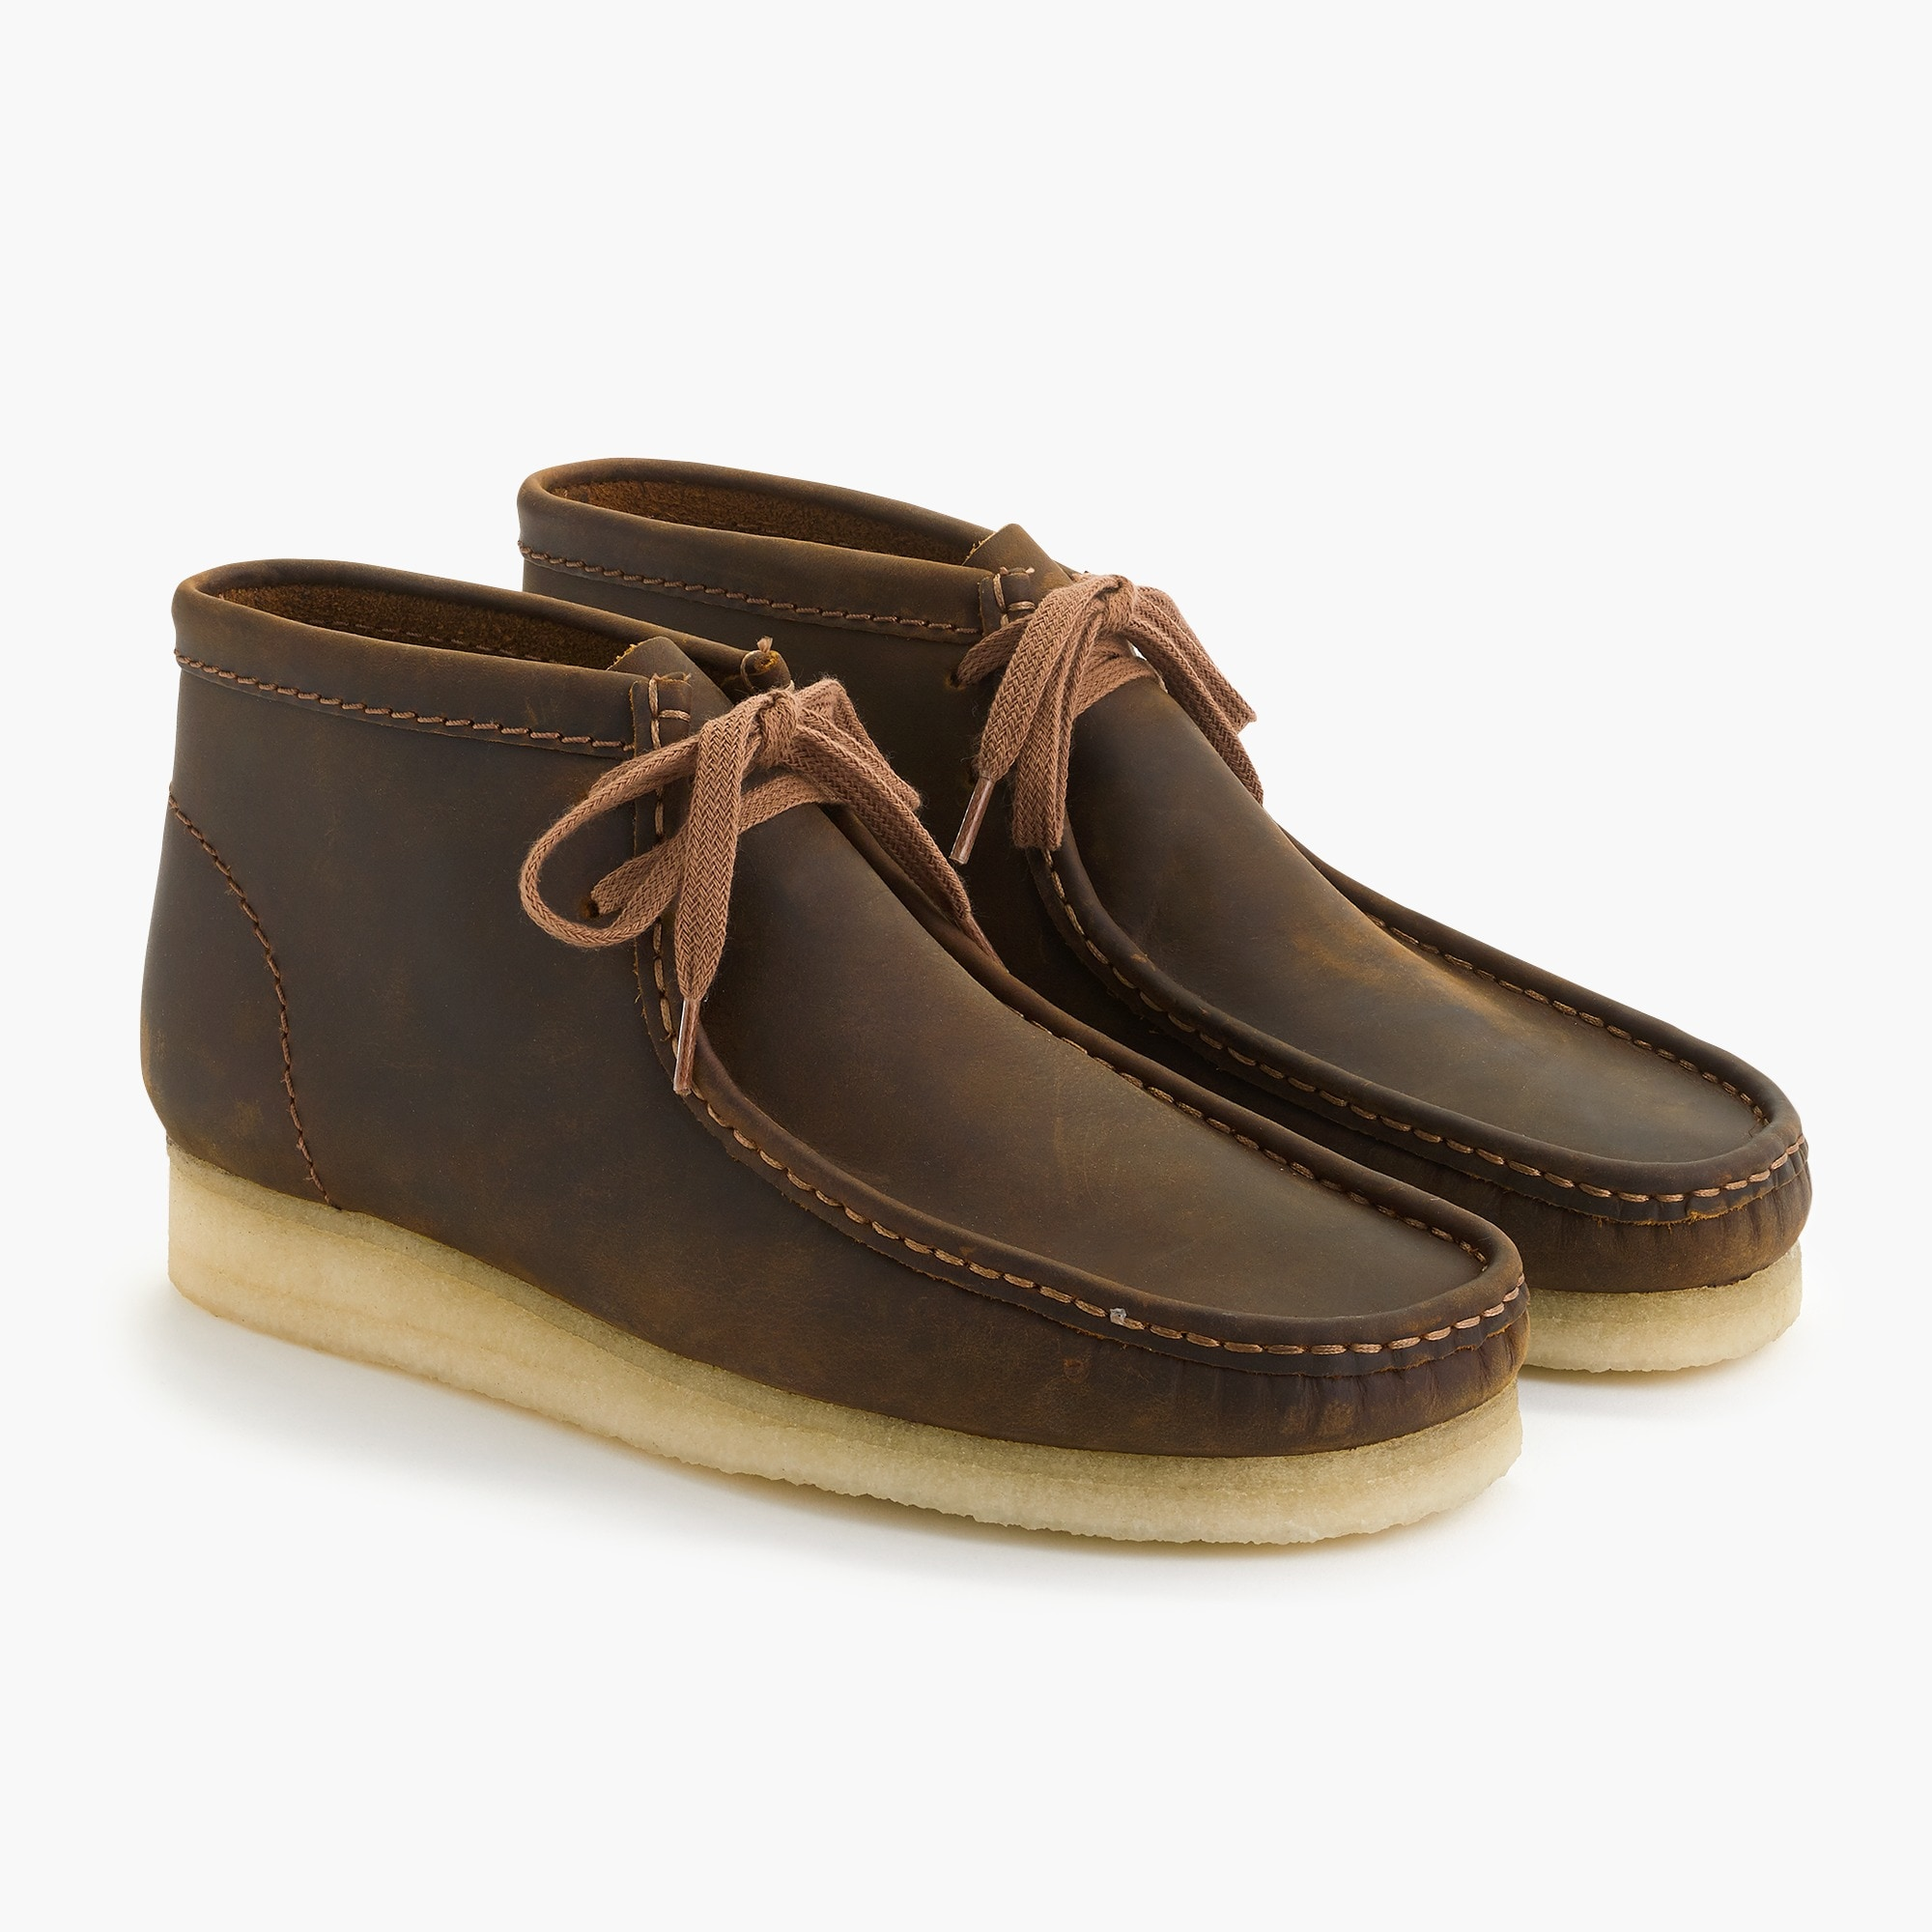 mens Clarks® Originals Wallabee® boots in leather